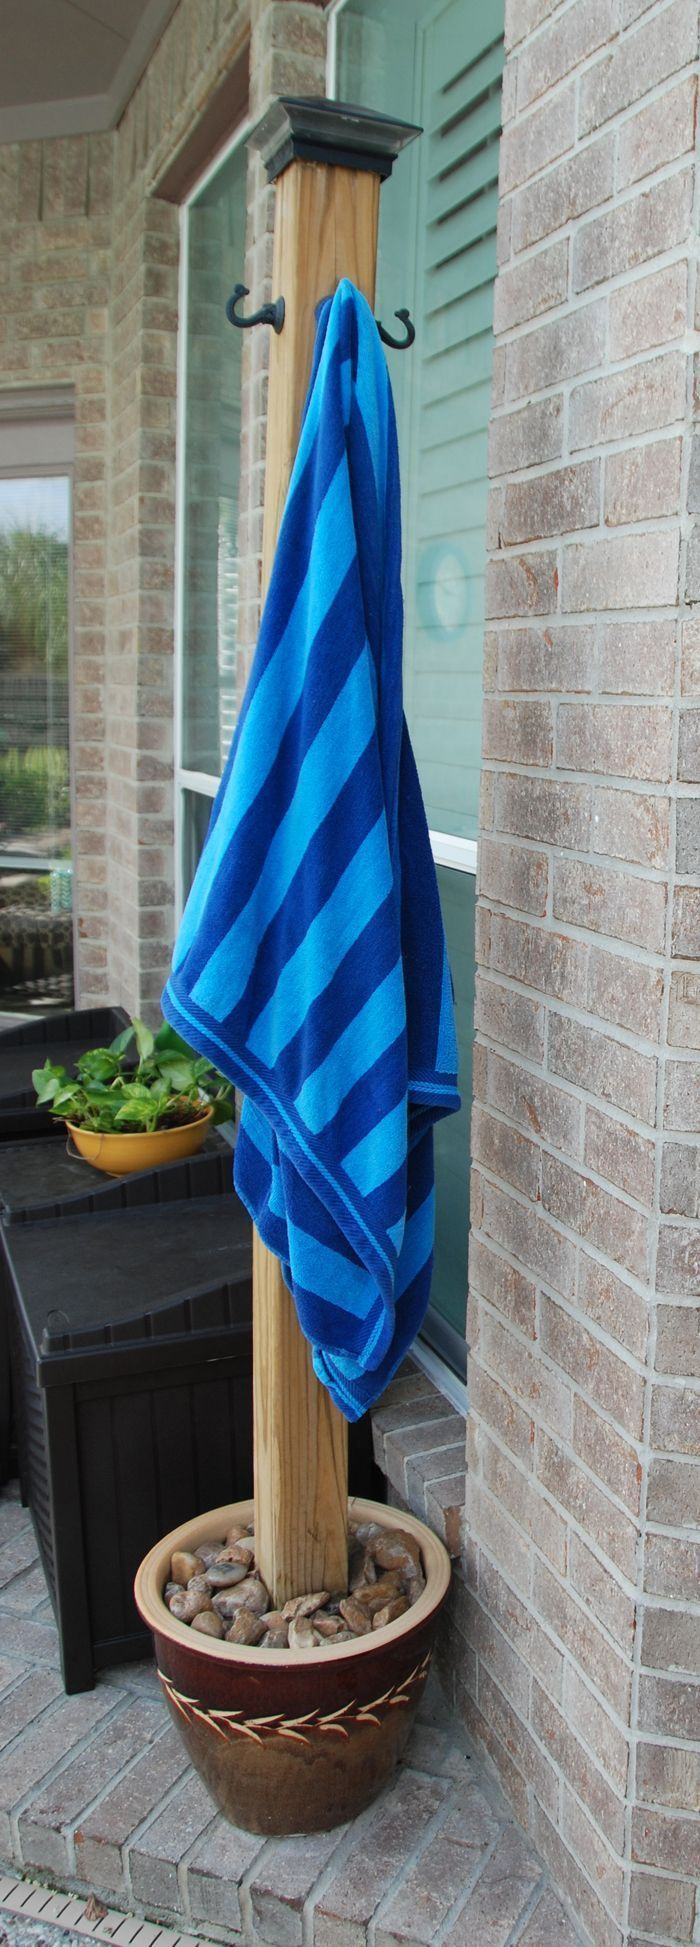 DIY Pool Towel Holder - We made this stand to hang our wet pool towels to dry after swimming!